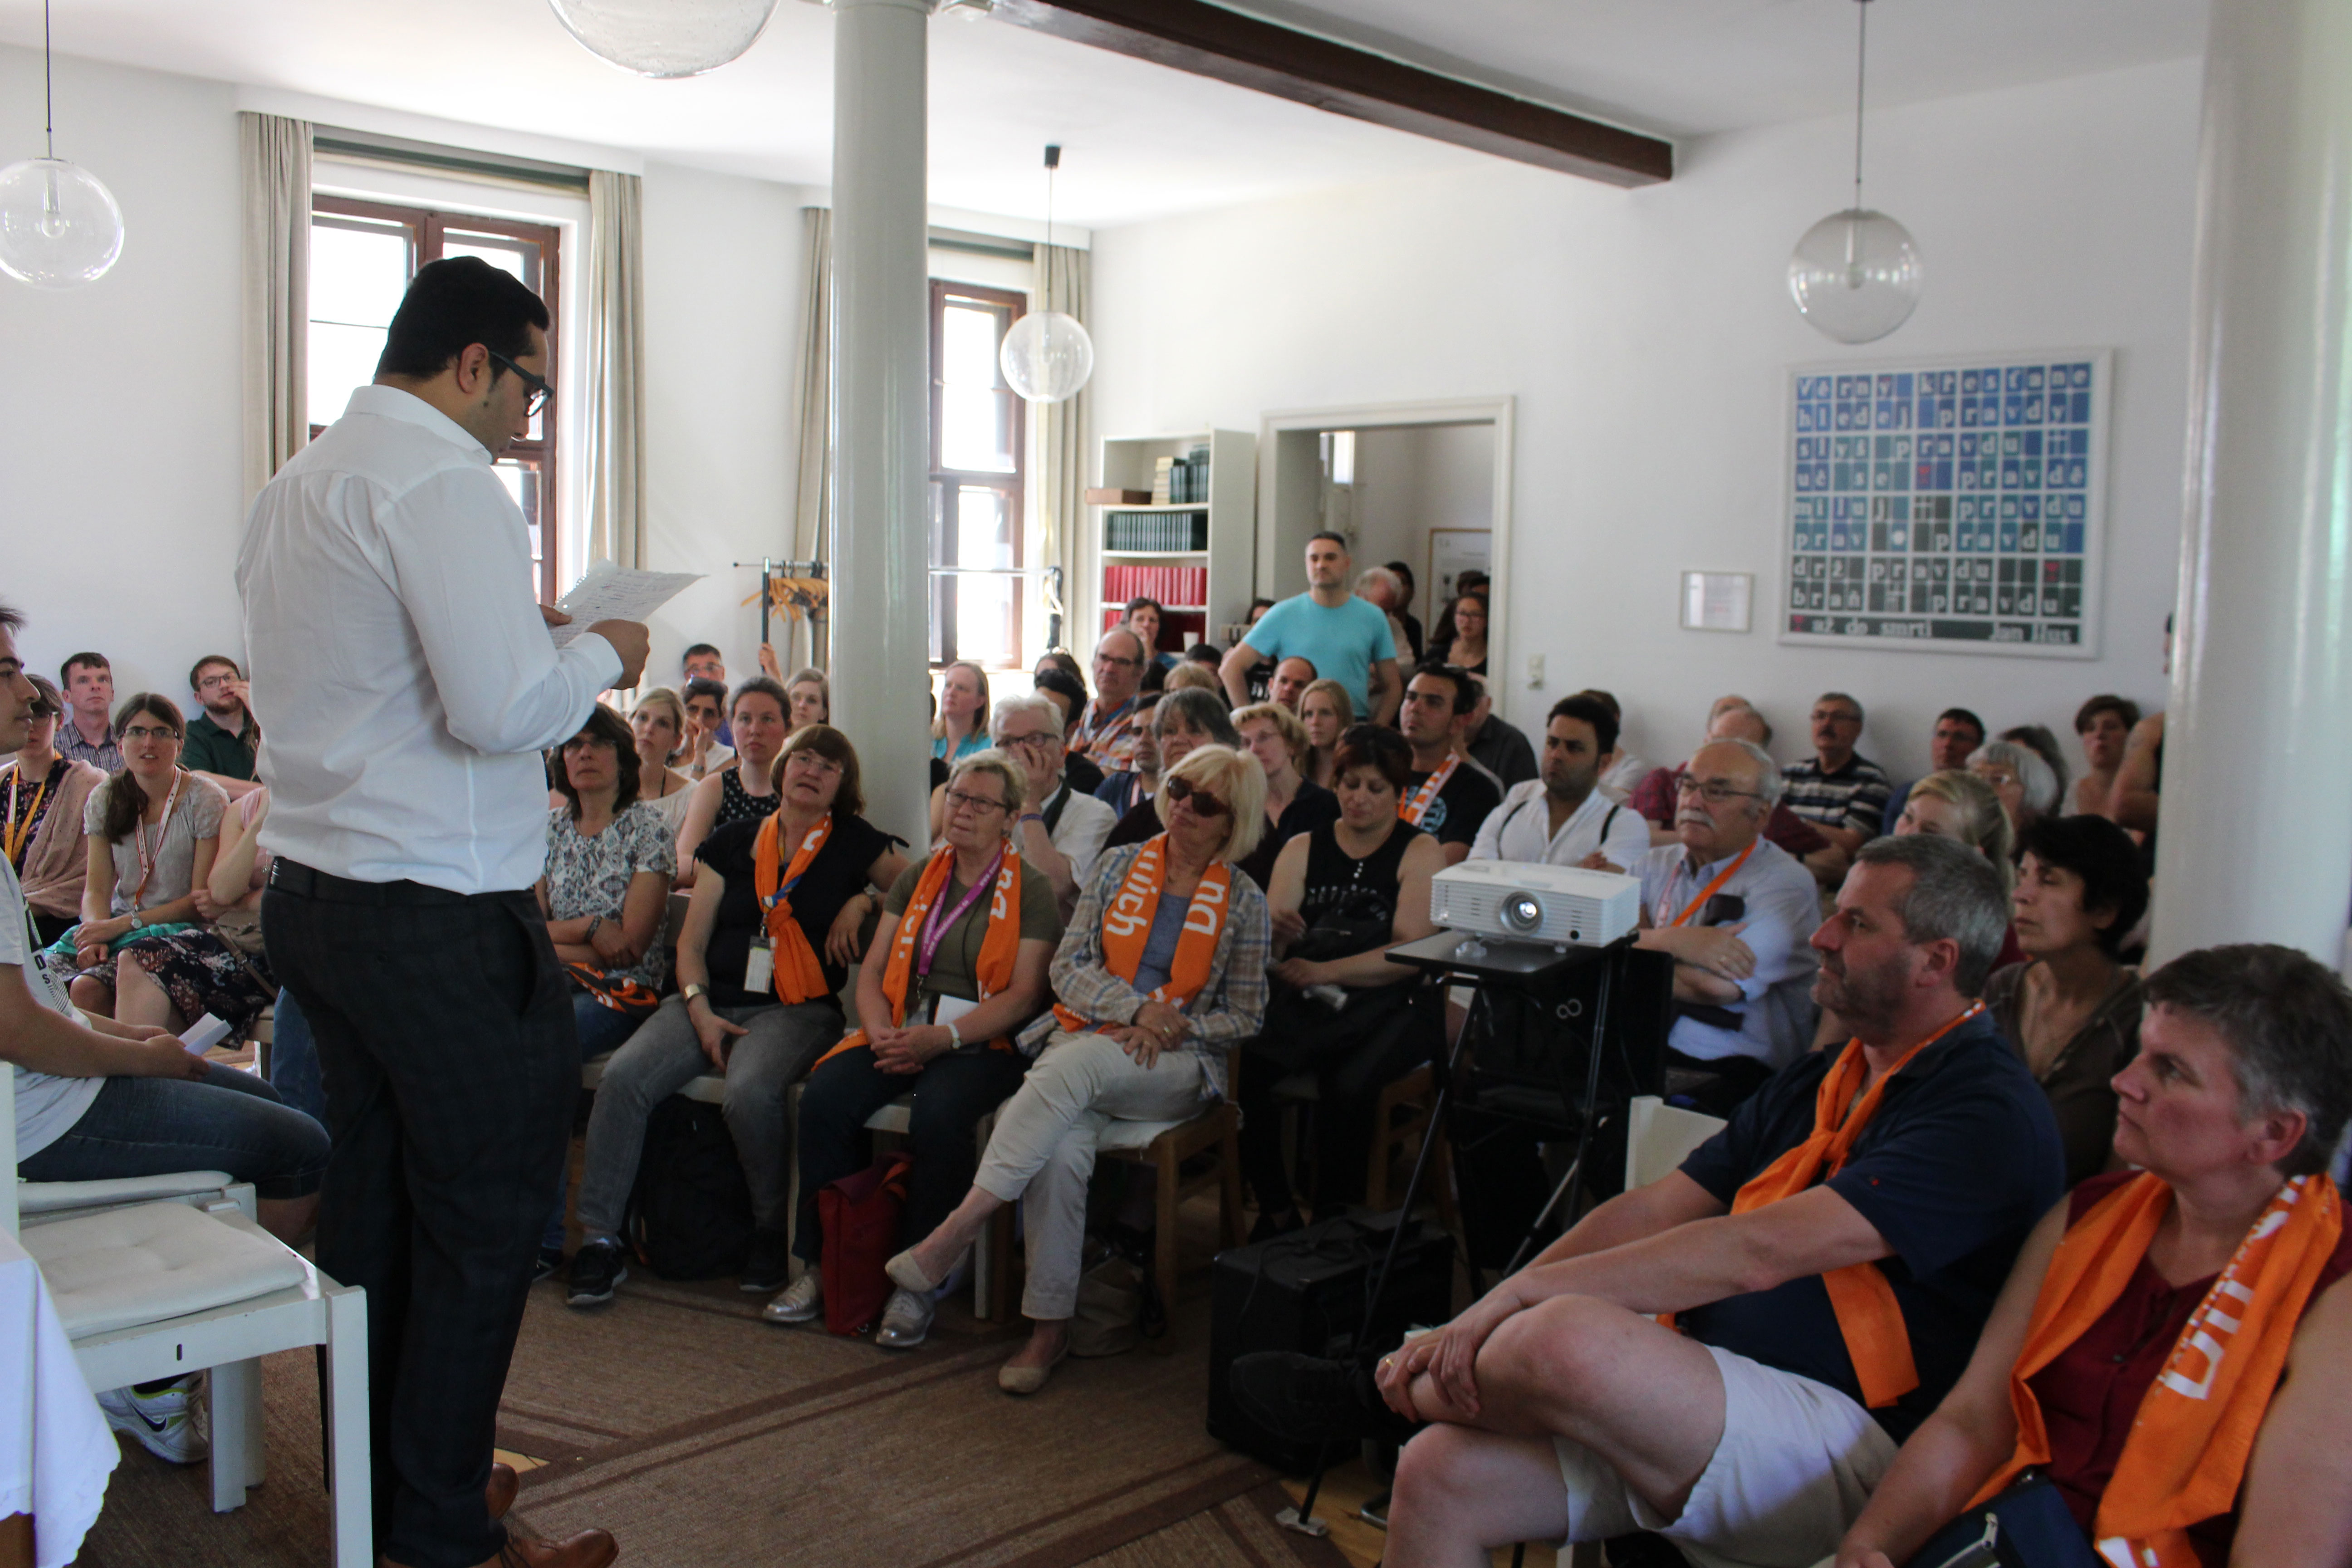 Man from the Iranian church sharing his story with the Kirchentag group